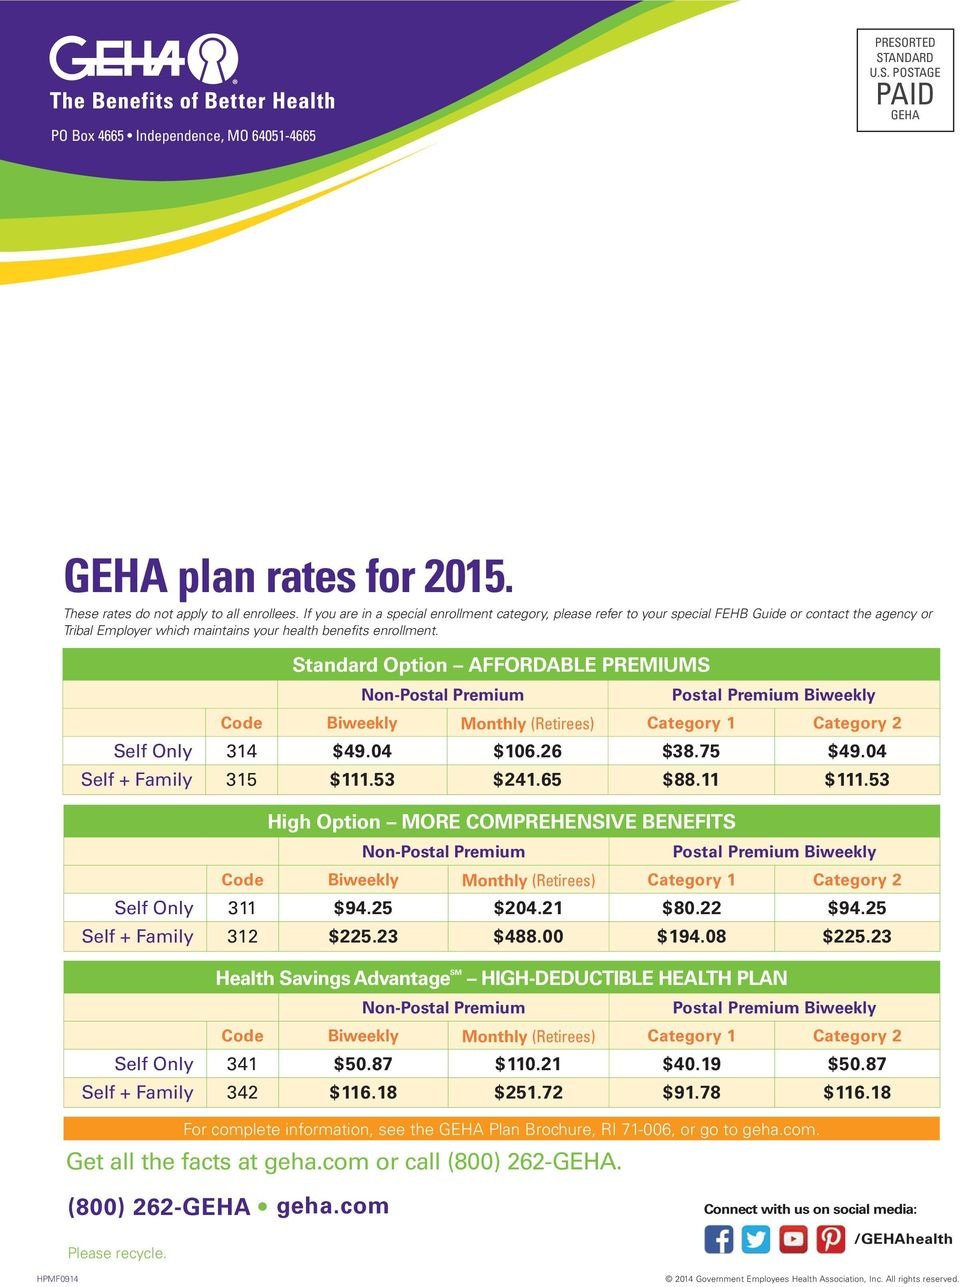 Standard Option AFFORDABLE PREMIUMS Non-Postal Premium Get all the facts at geha.com or call (800) 262-GEHA.